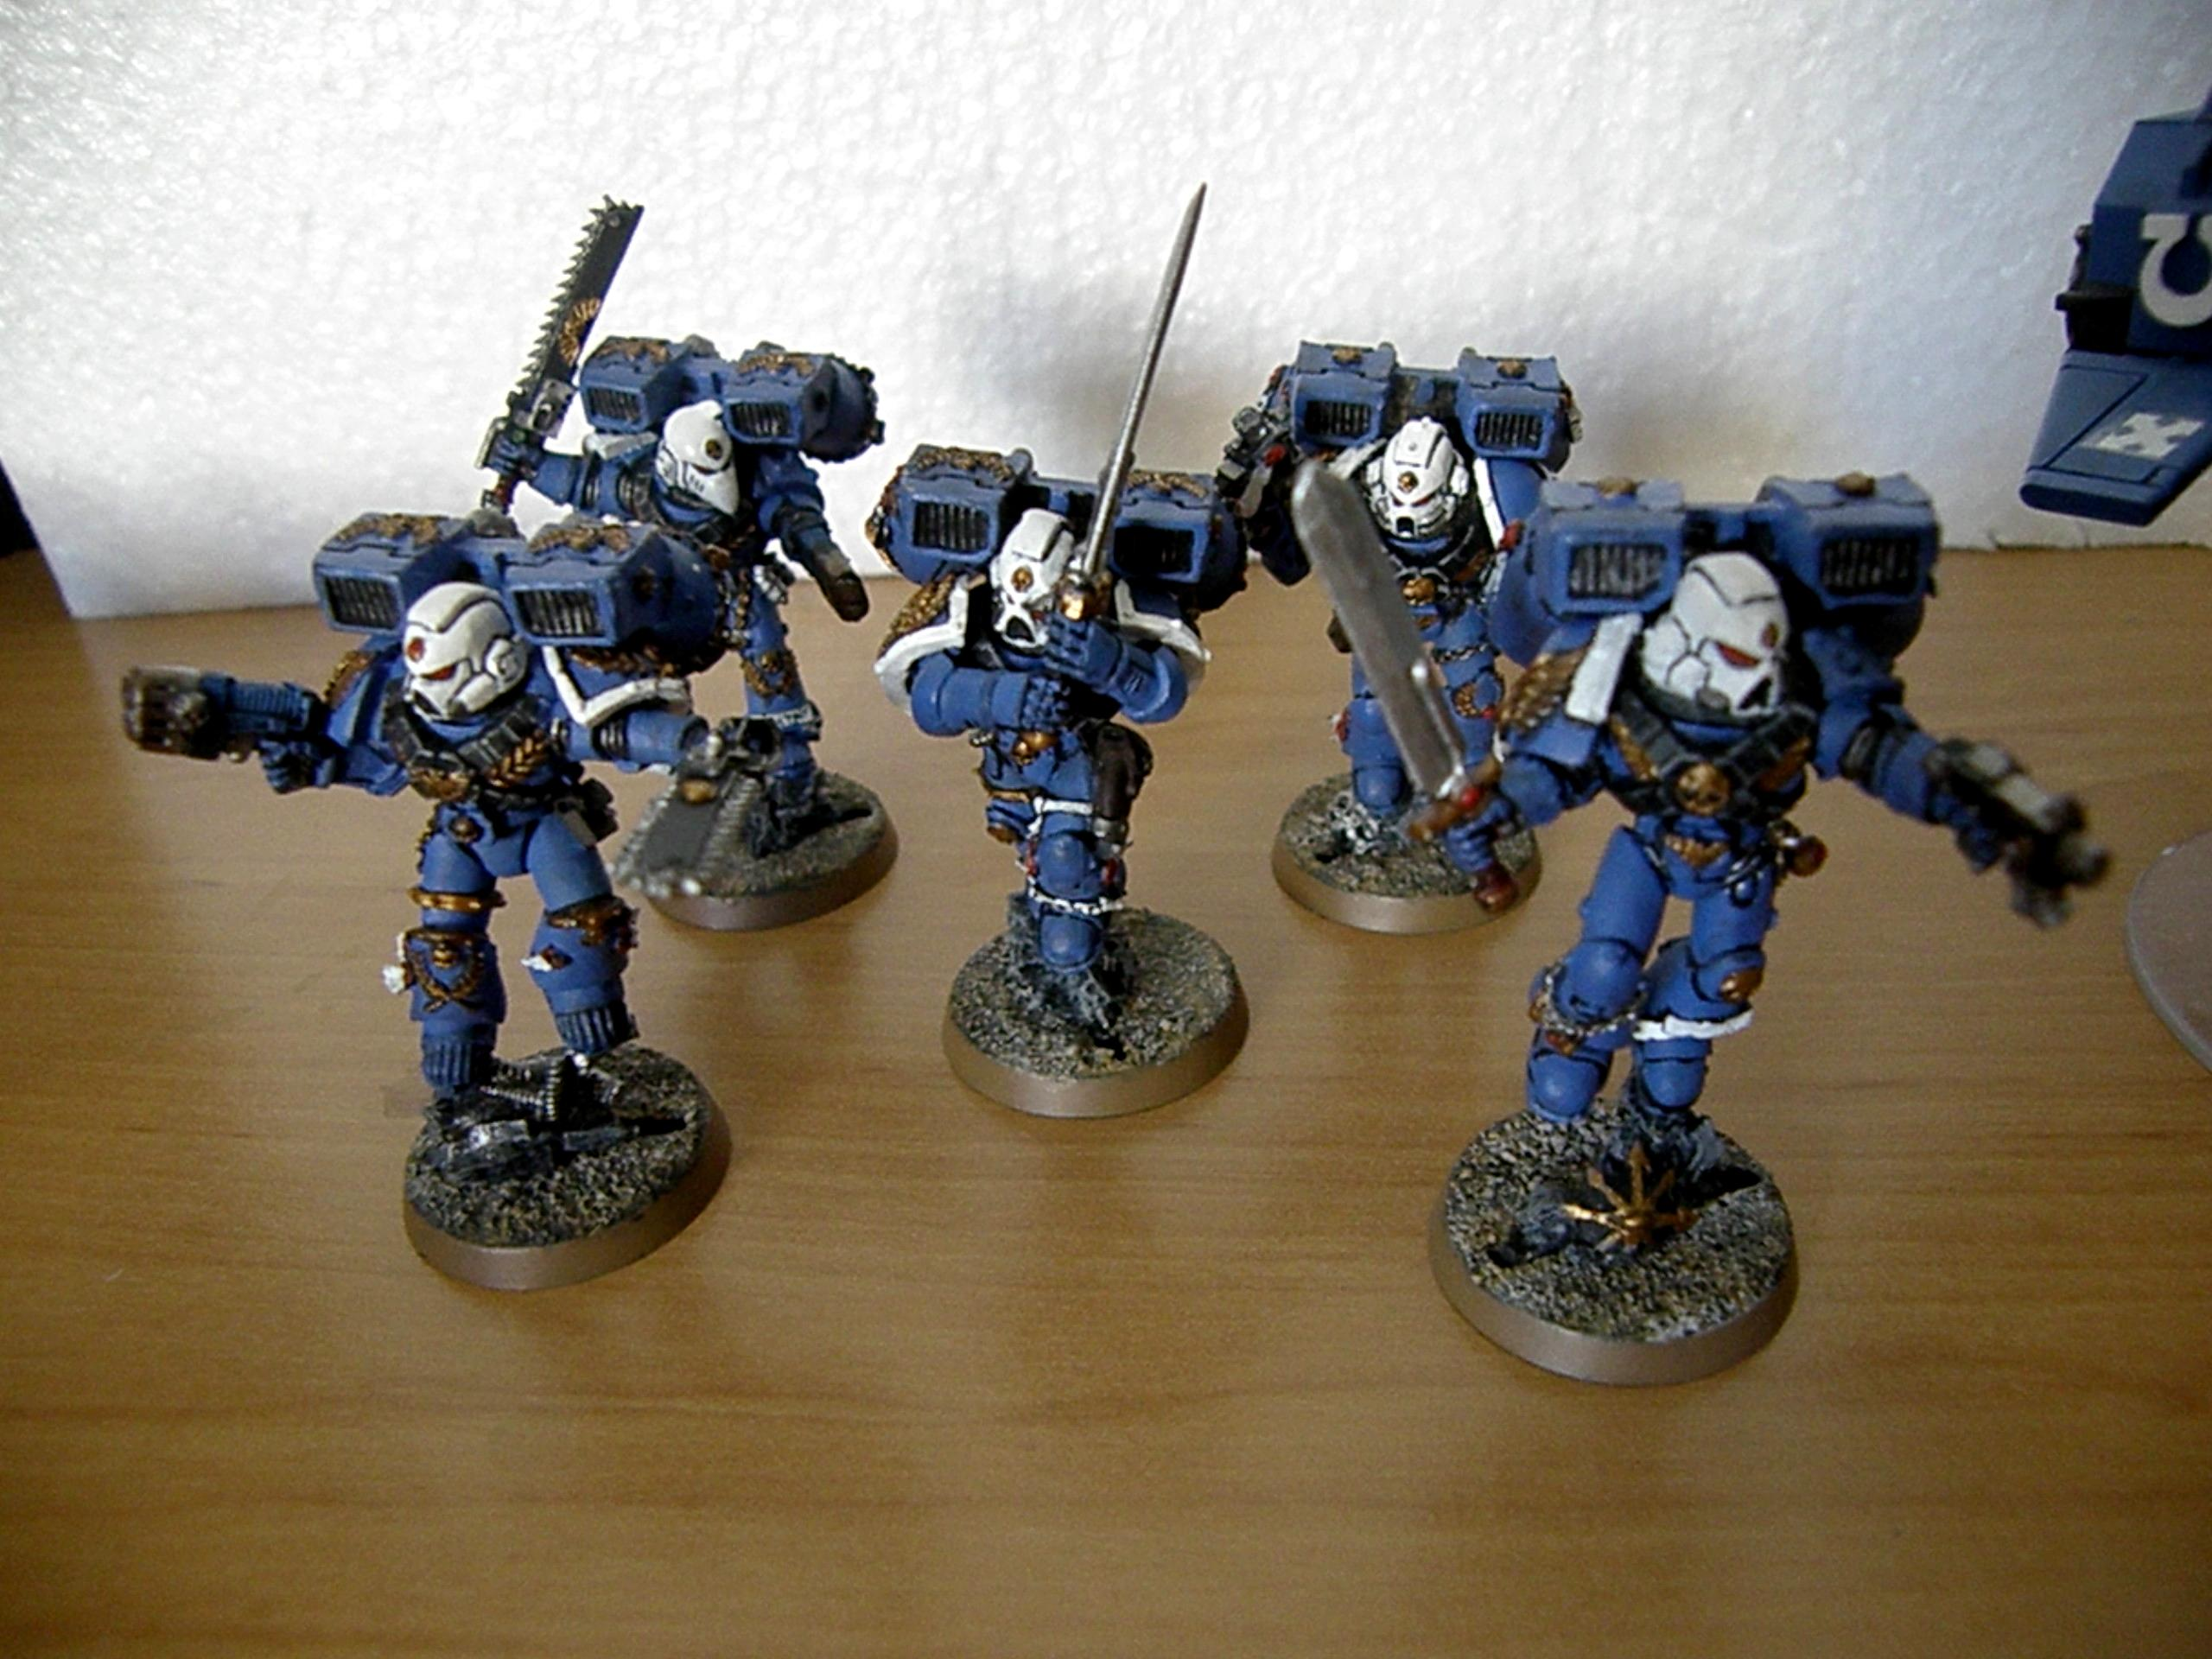 1st Company, Blue, First Company, Jump, Jump Pack, Packs, Space, Space Marines, Ultramarines, Vanguard, Vanguard Veterans, Veteran, White, White Helmets